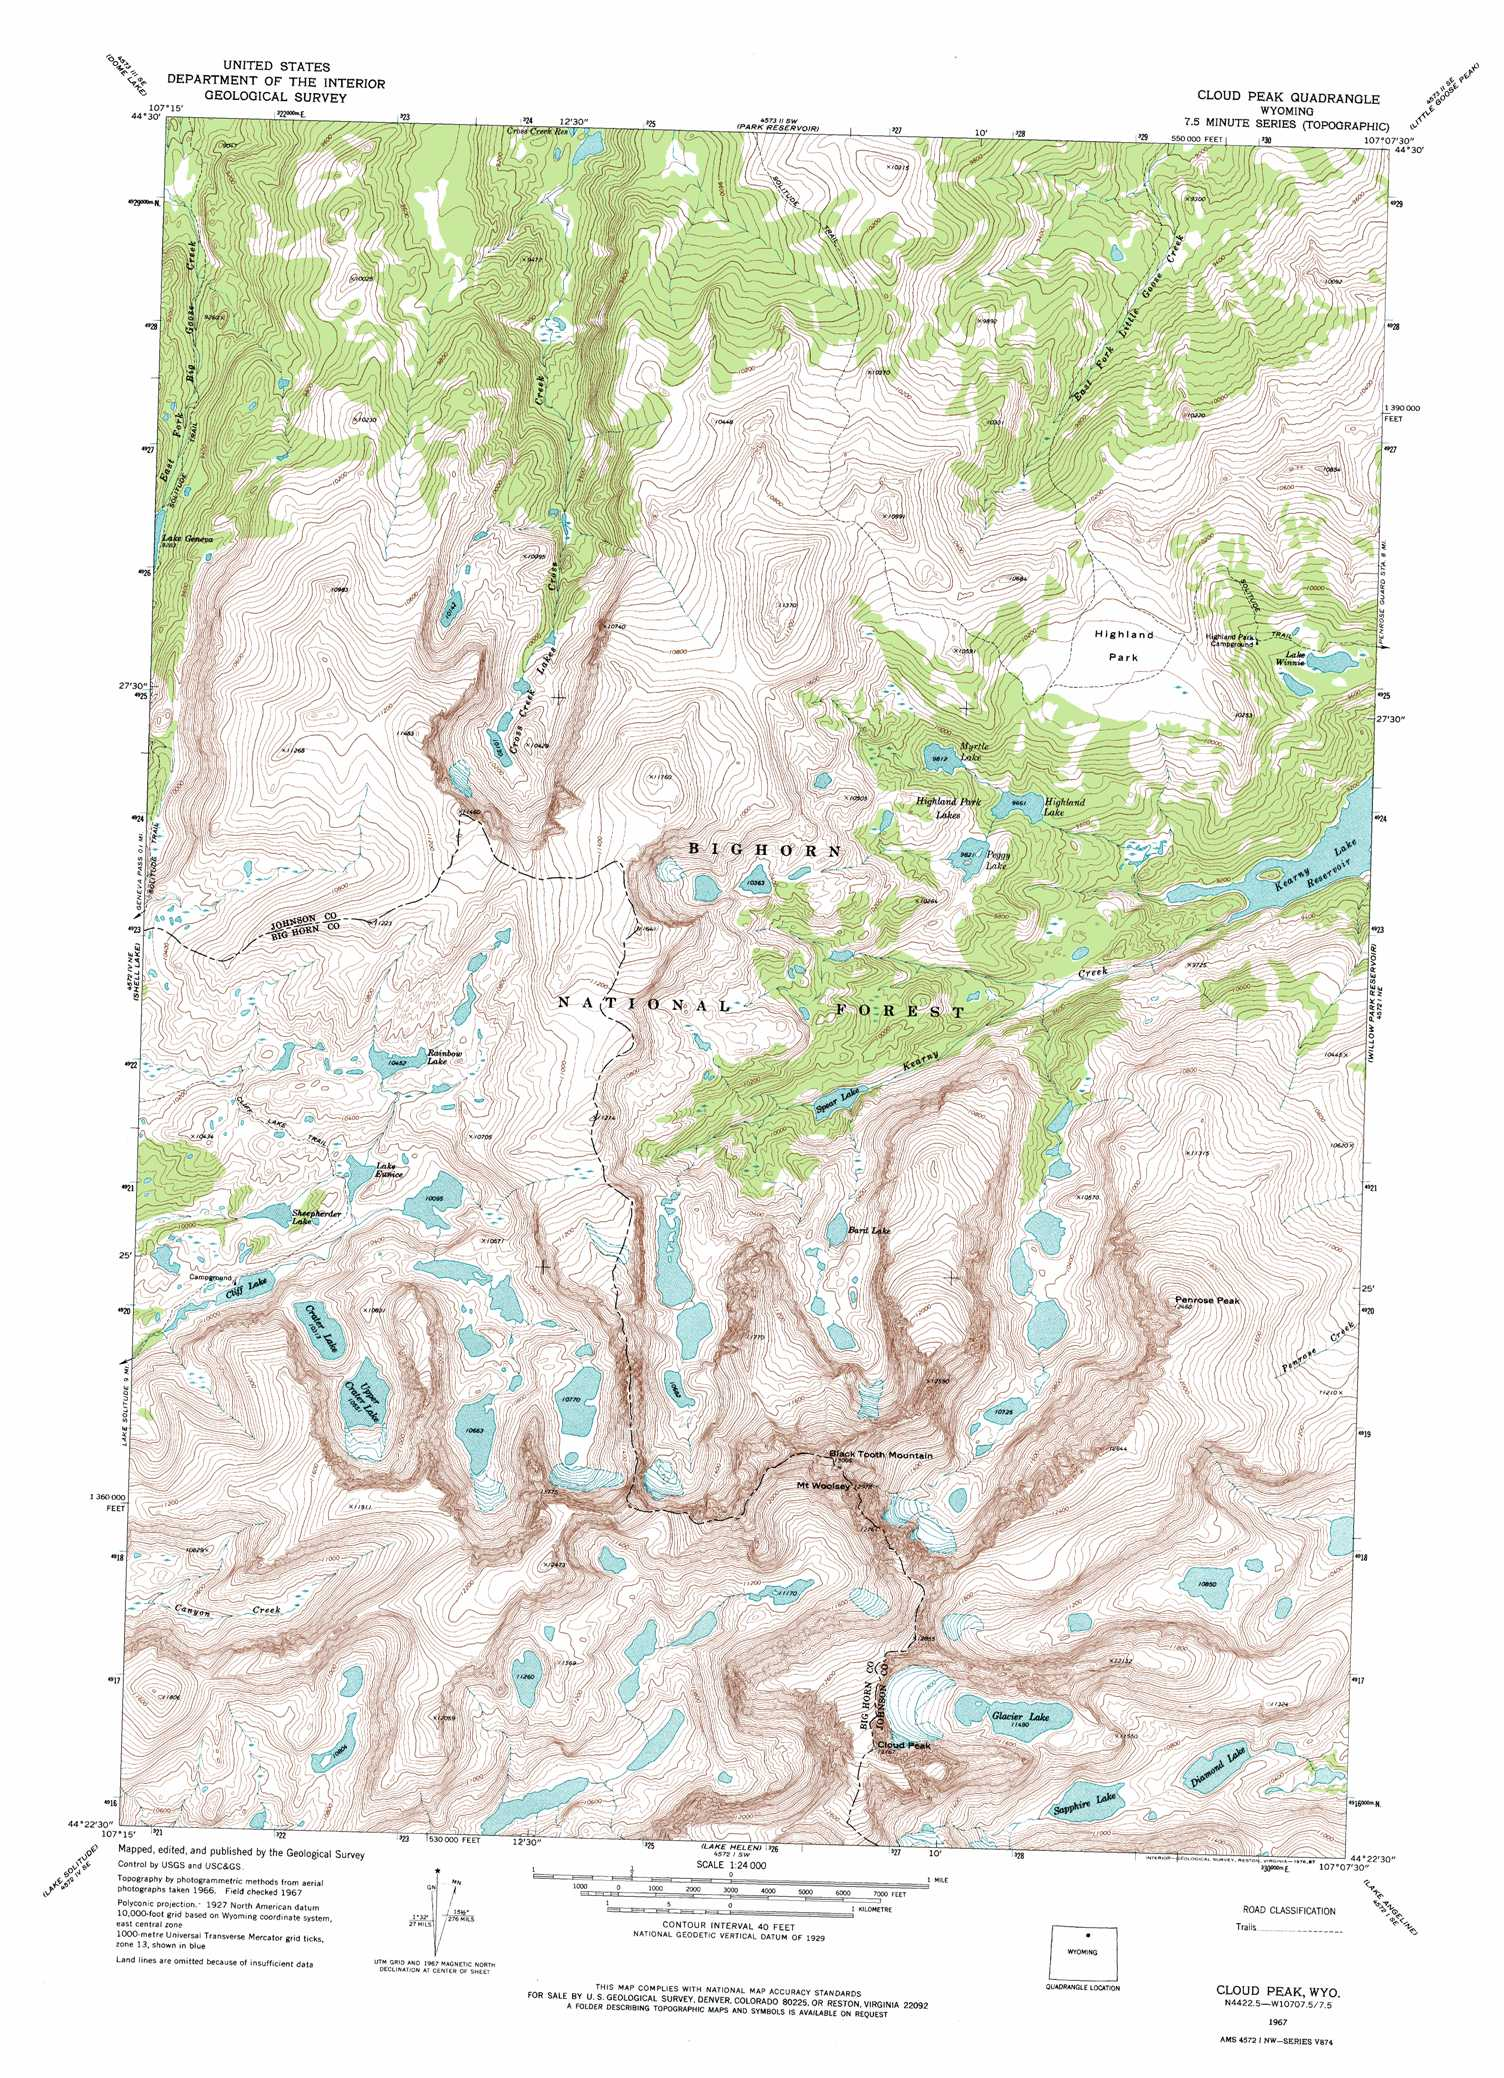 Cloud Peak Topographic Map WY  USGS Topo Quad 44107d2